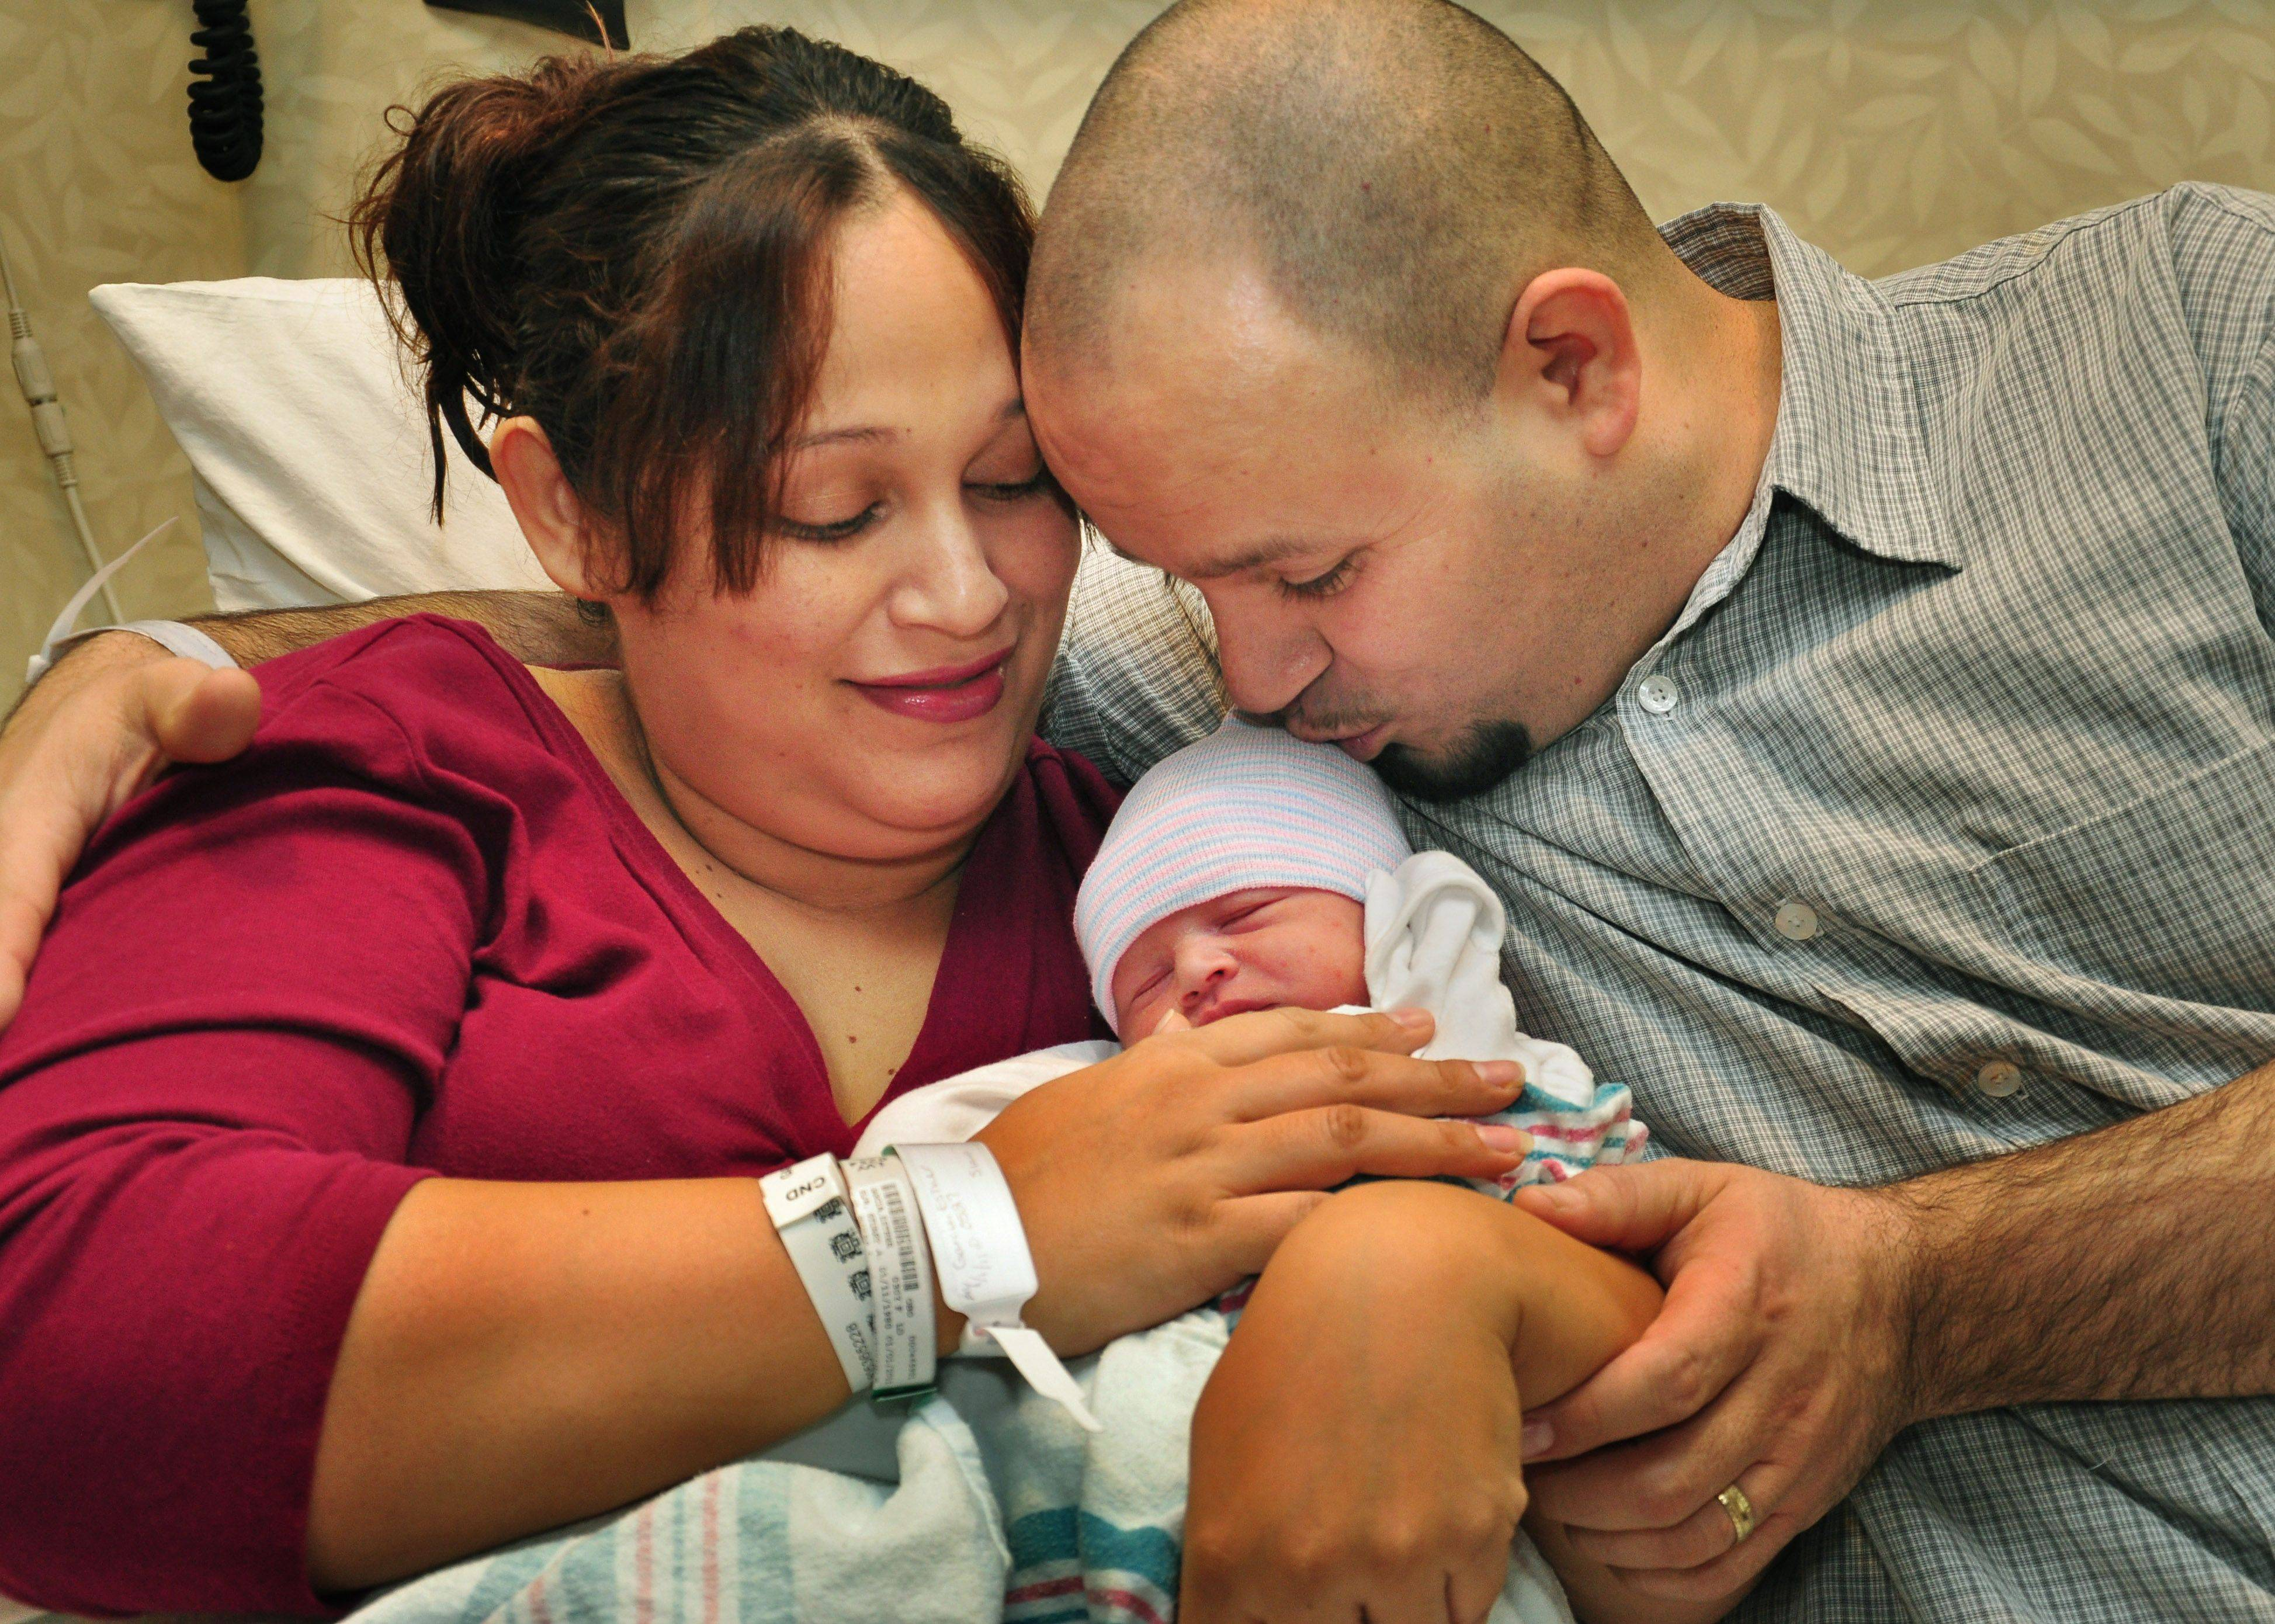 Lake County's first baby of 2011, Jakob Garcia was born at 5:27 a.m. He weighed 7 pounds 11 ounces and was 20.5 inches long. Parents are Esther and Javier Garcia of Round Lake.